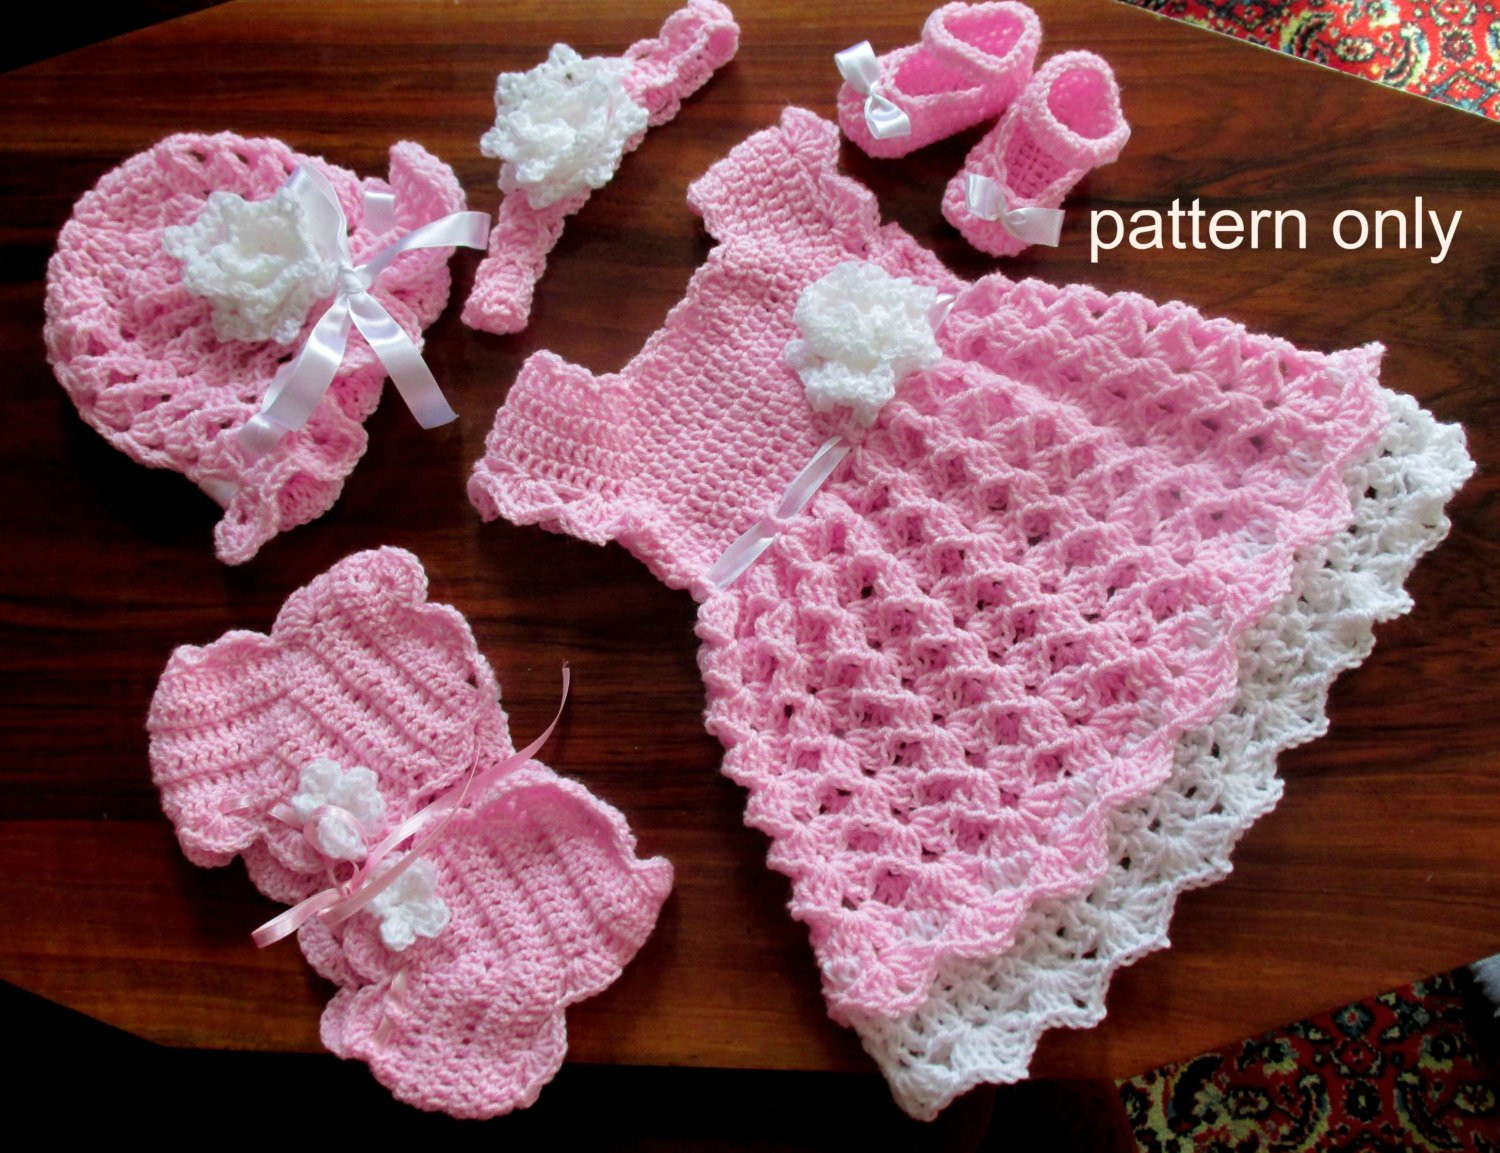 Free Baby Girl Crochet Patterns Lovely Crochet Patterns Crochet Pattern Baby Baby Crochet Pattern Of Fresh 40 Pics Free Baby Girl Crochet Patterns